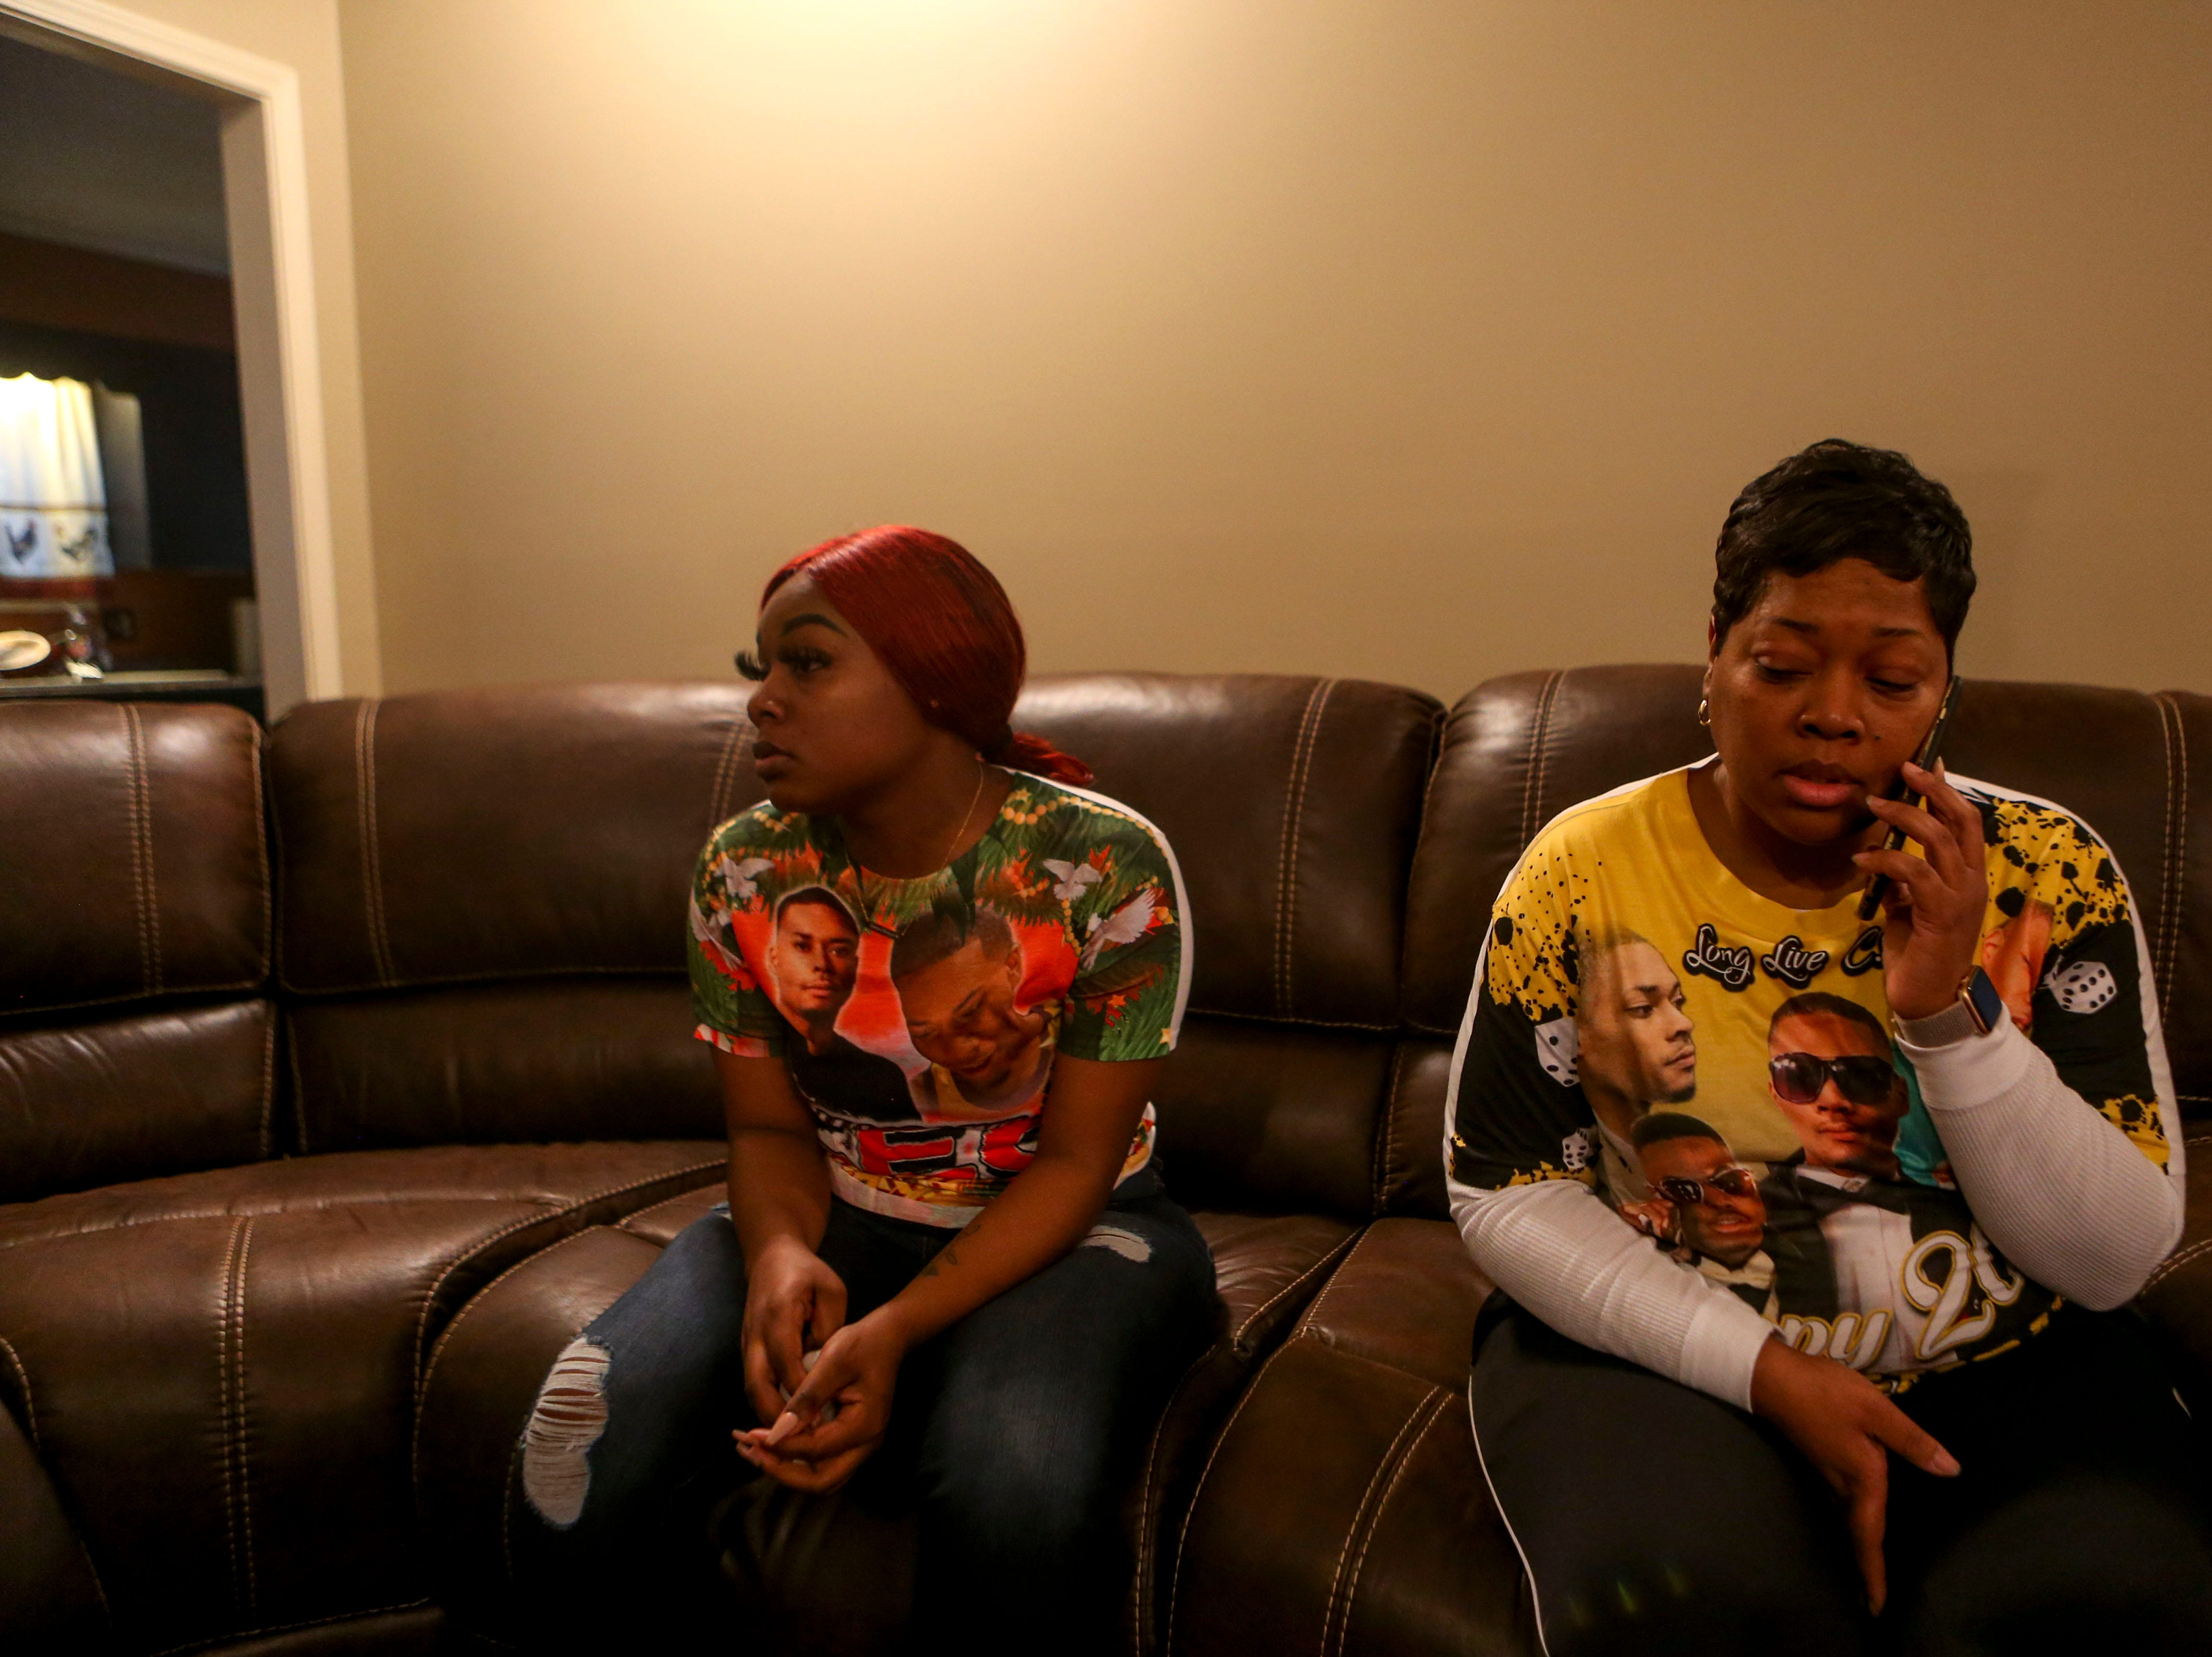 Kemmeka Currie, right, Kentavious Wilson's mother, and Keyshia Pruitt, left, Wilson's former girlfriend, sit on a couch while chatting about Wilson at the Currie's home in Brownsville, Tenn., on Wednesday, Jan. 2, 2019.